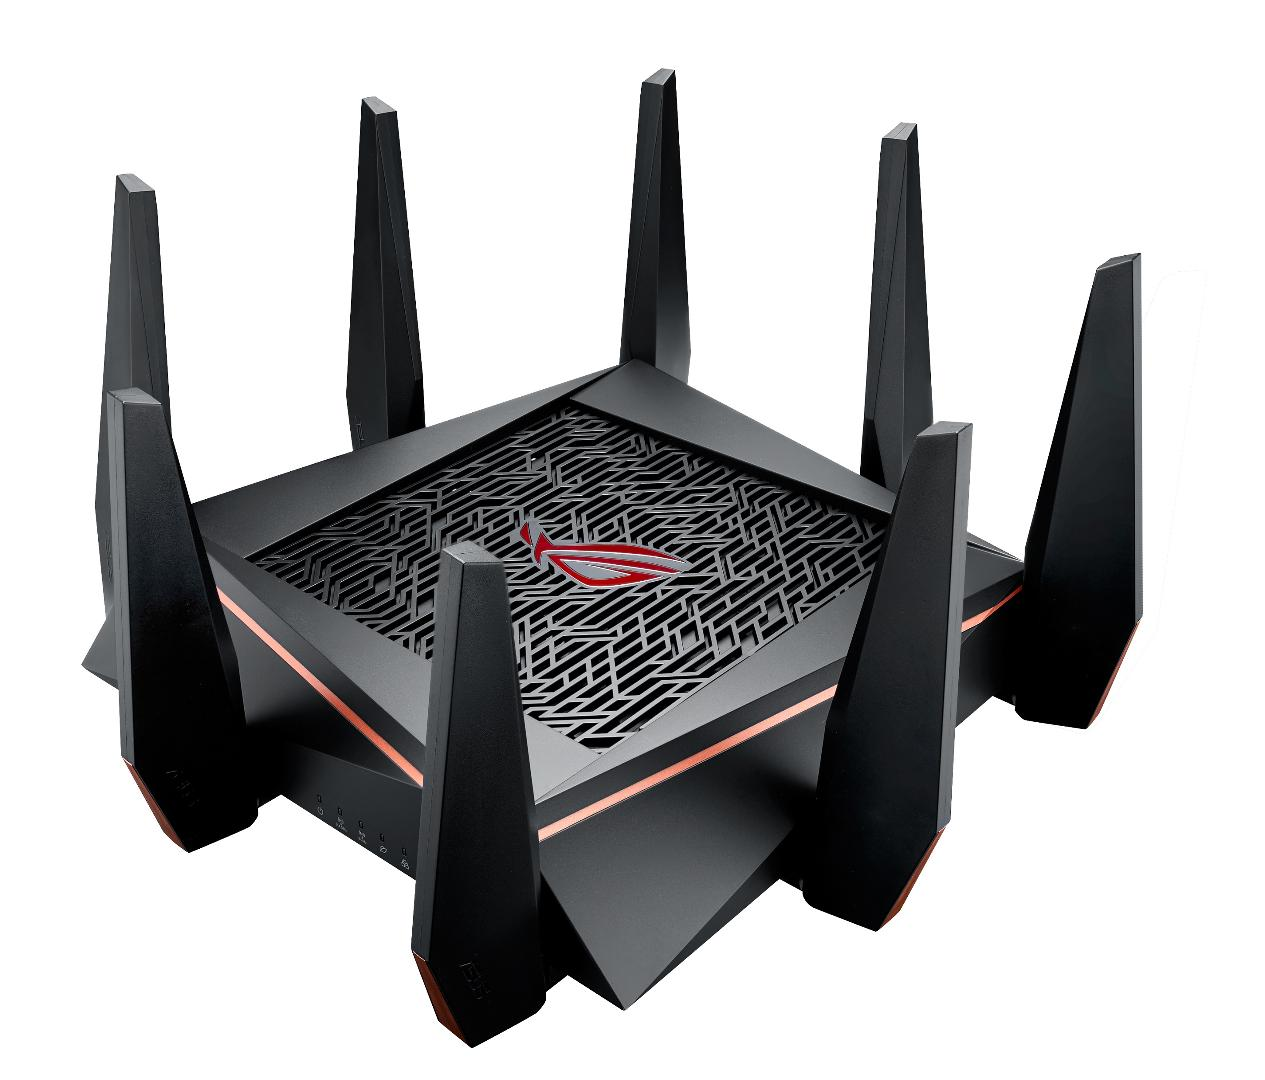 The Asus ROG Gaming Router